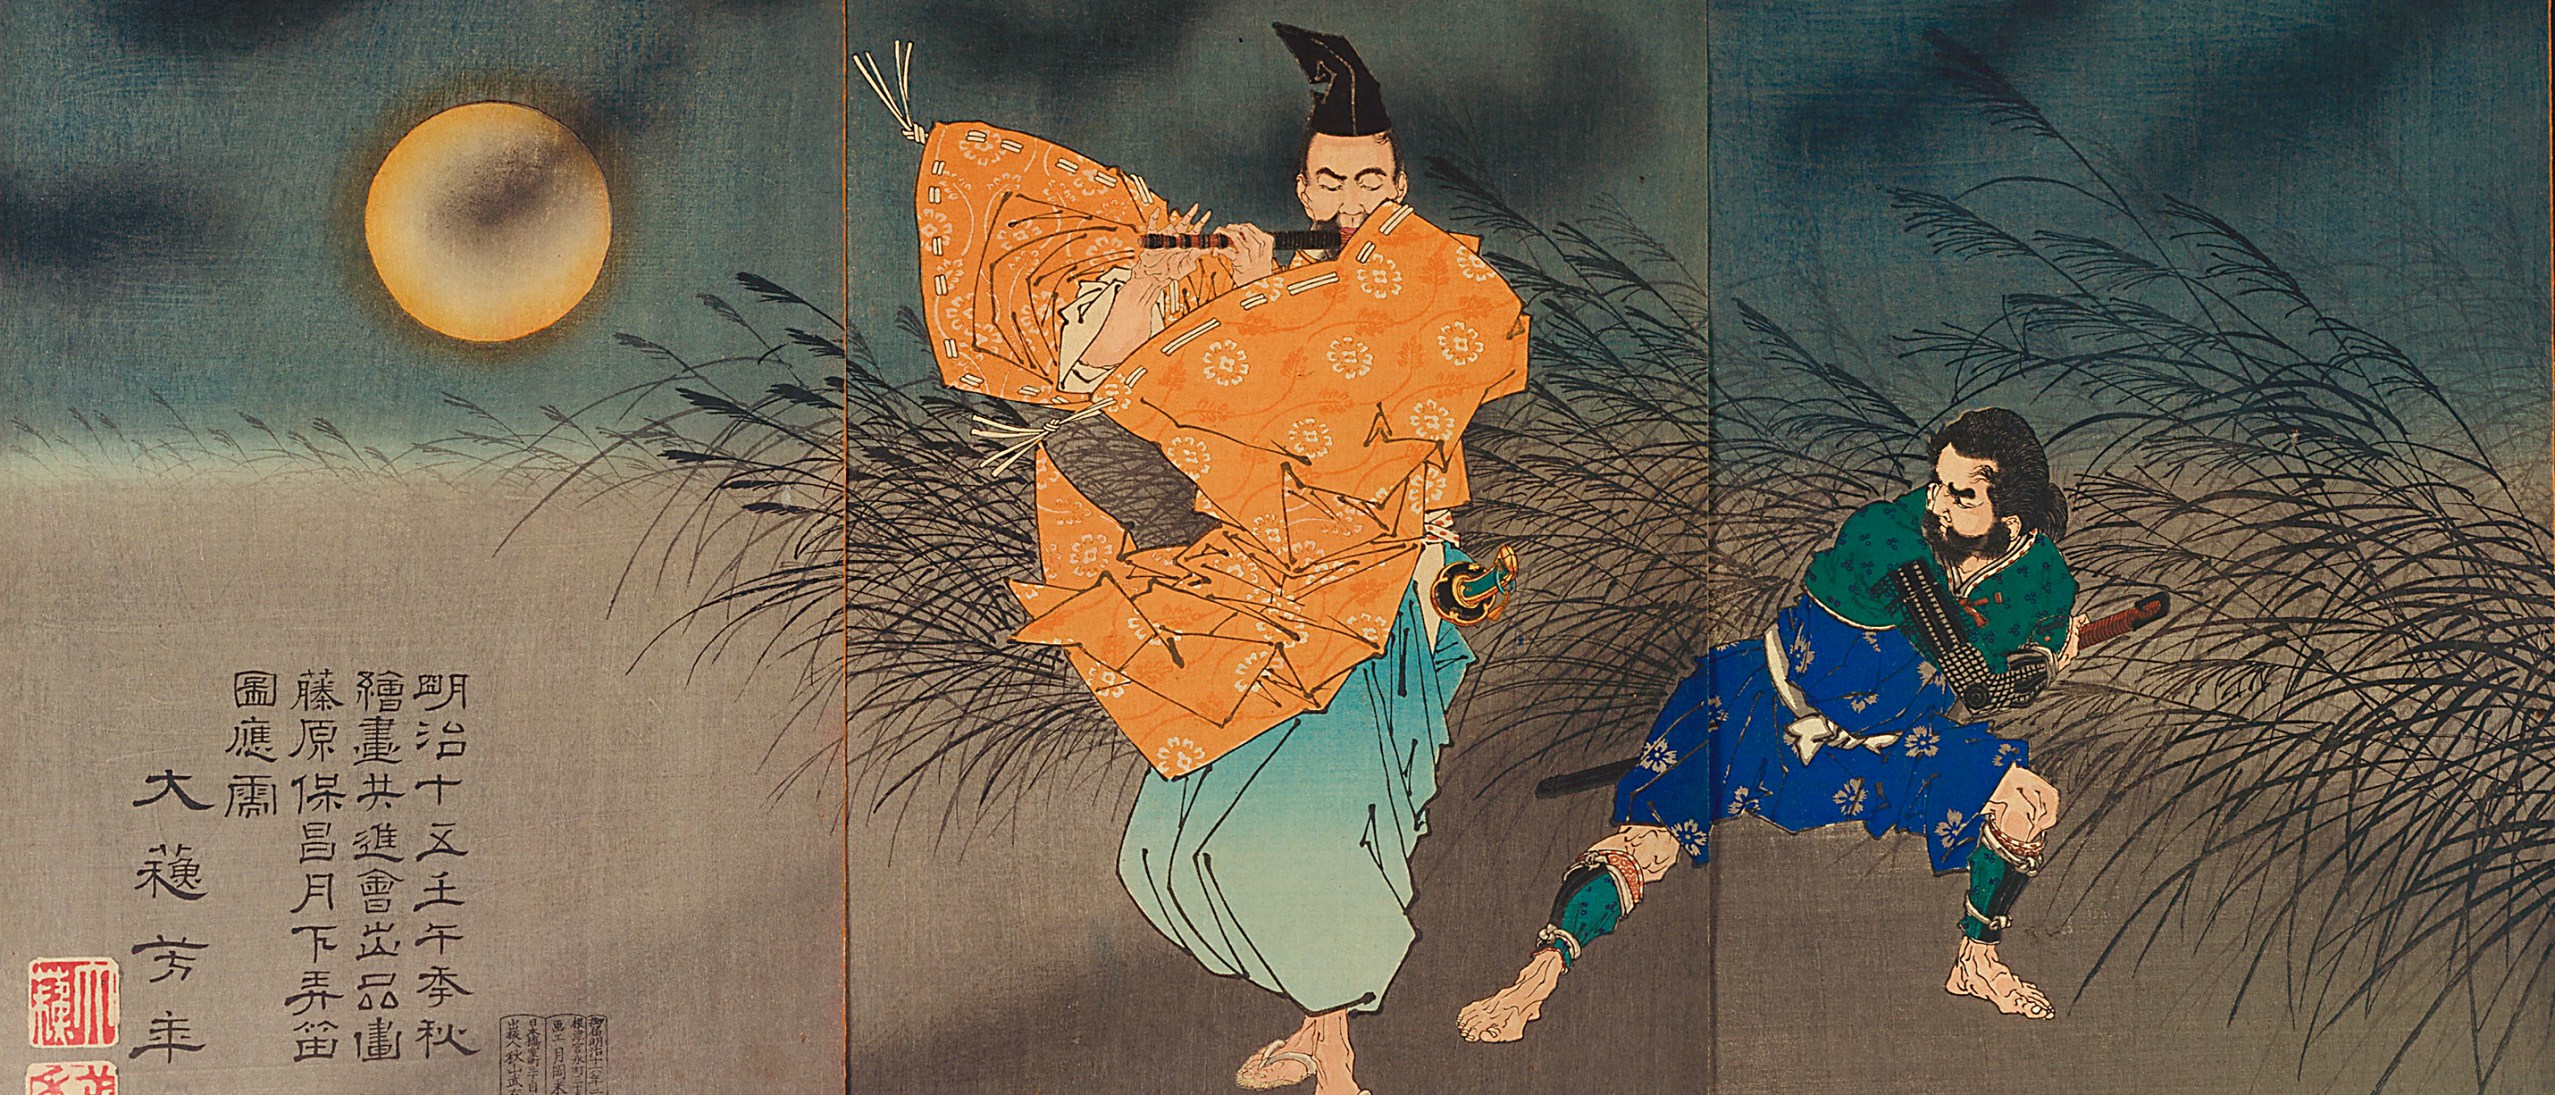 Woodblock print of two men. one playing flute-like instrument